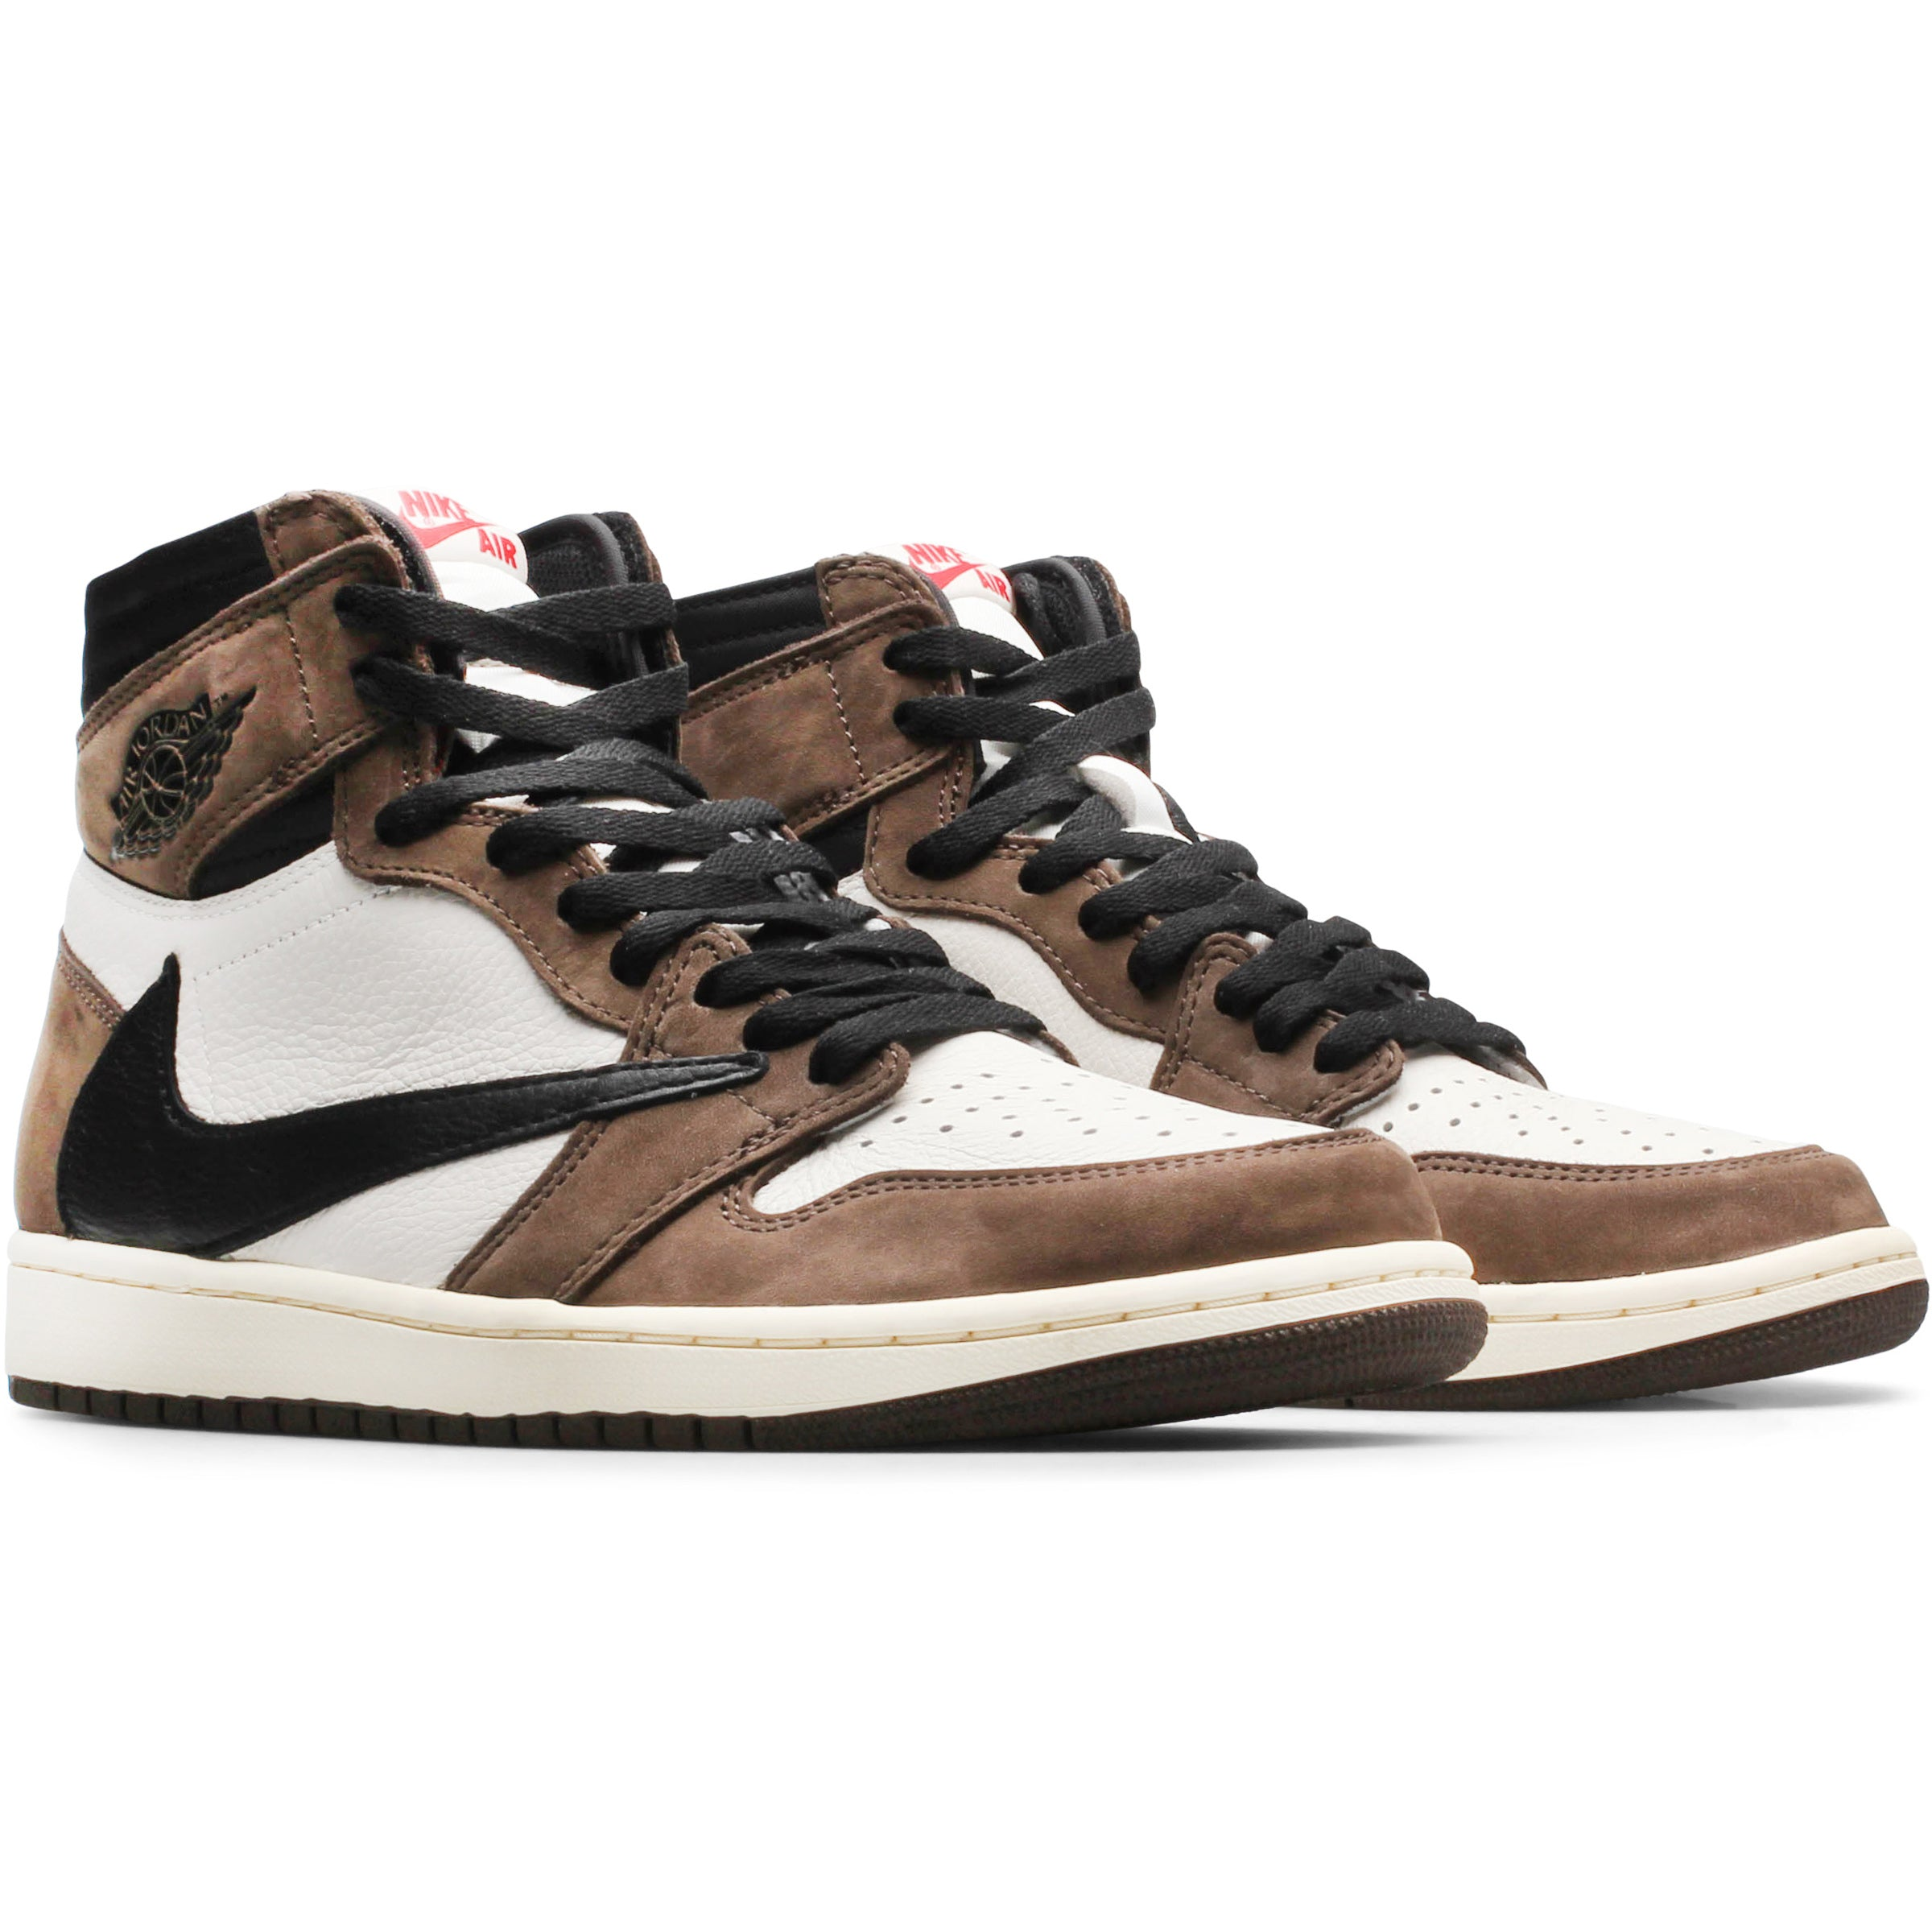 sale retailer c999b f03ca 5/11/19: Air Jordan 1 x Travis Scott – Bodega